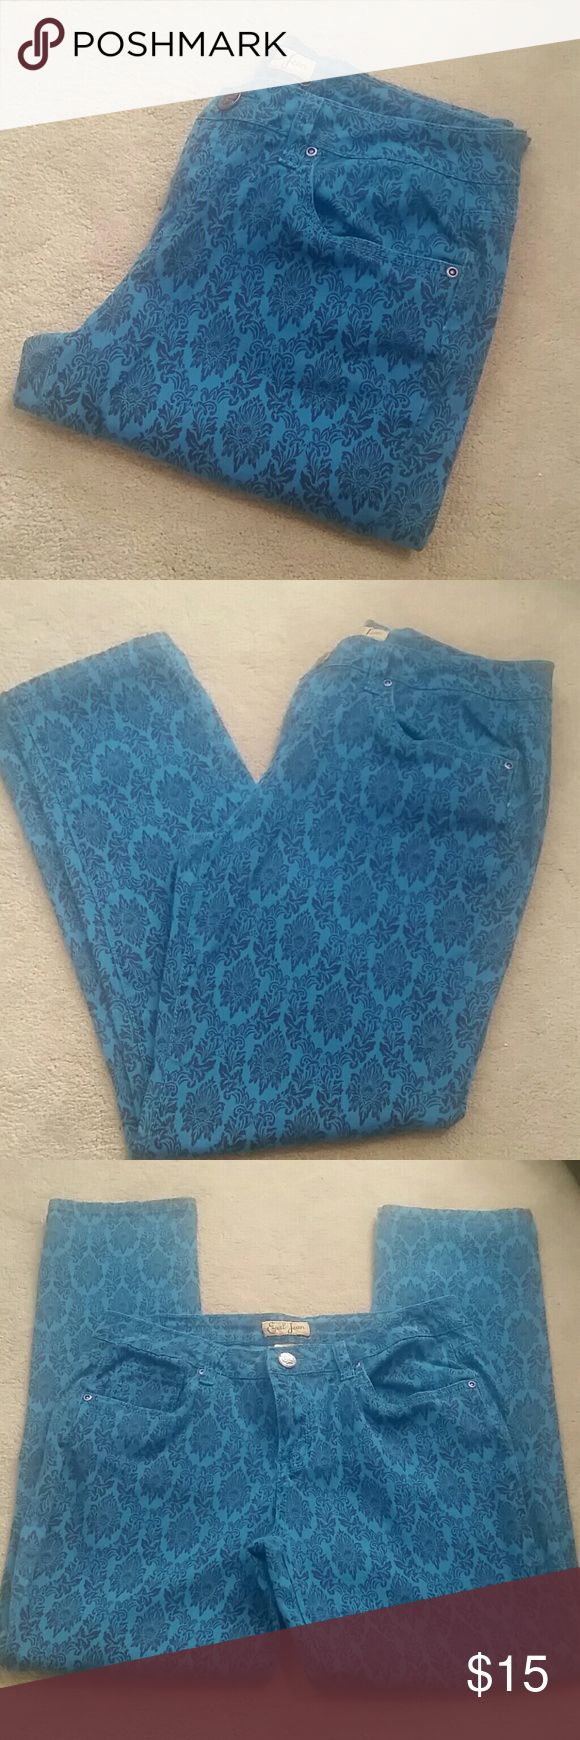 "Earl Damask Printed Jeans sz 8P Good pre-loved condition from a smoke and pet free home. Bright blue jeans with black damask printed design. 5 pocket design  98%/ 2% elastane  Approx Measurements :  Waist 15.5"" Rise 8.5"" Inseam 28"" Earl Jeans Jeans Skinny"